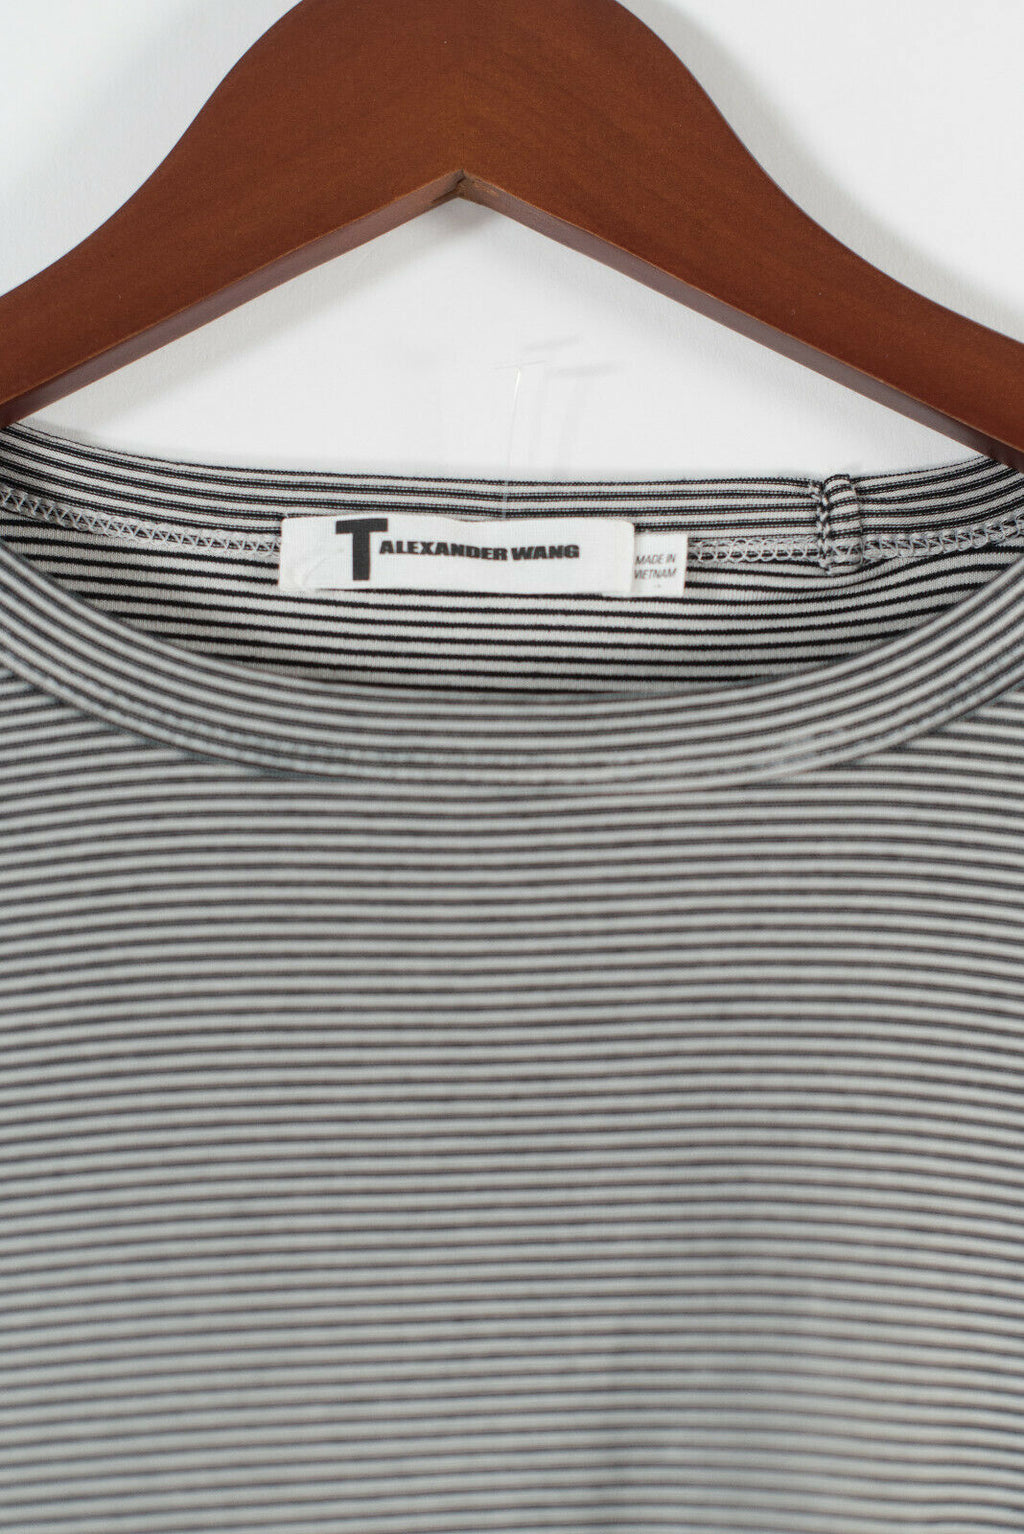 T Alexander Wang Size XS Black White Striped Tee Shirt